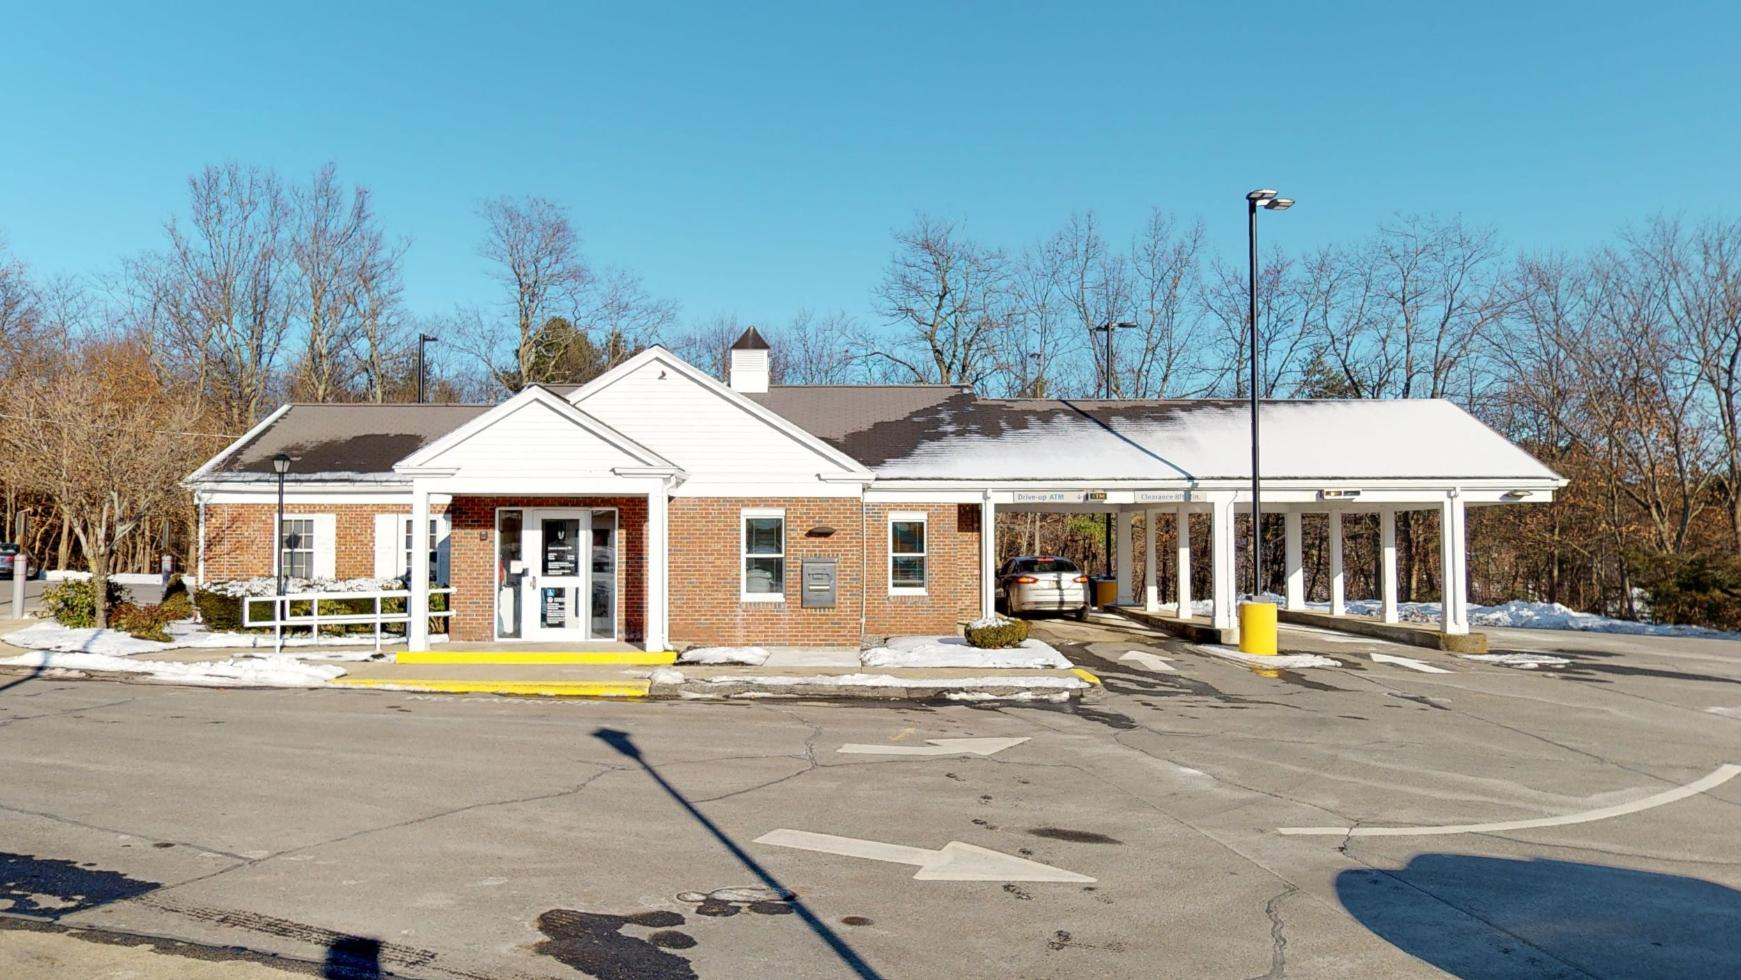 Bank of America financial center with drive-thru ATM   560 Main St, Holden, MA 01520